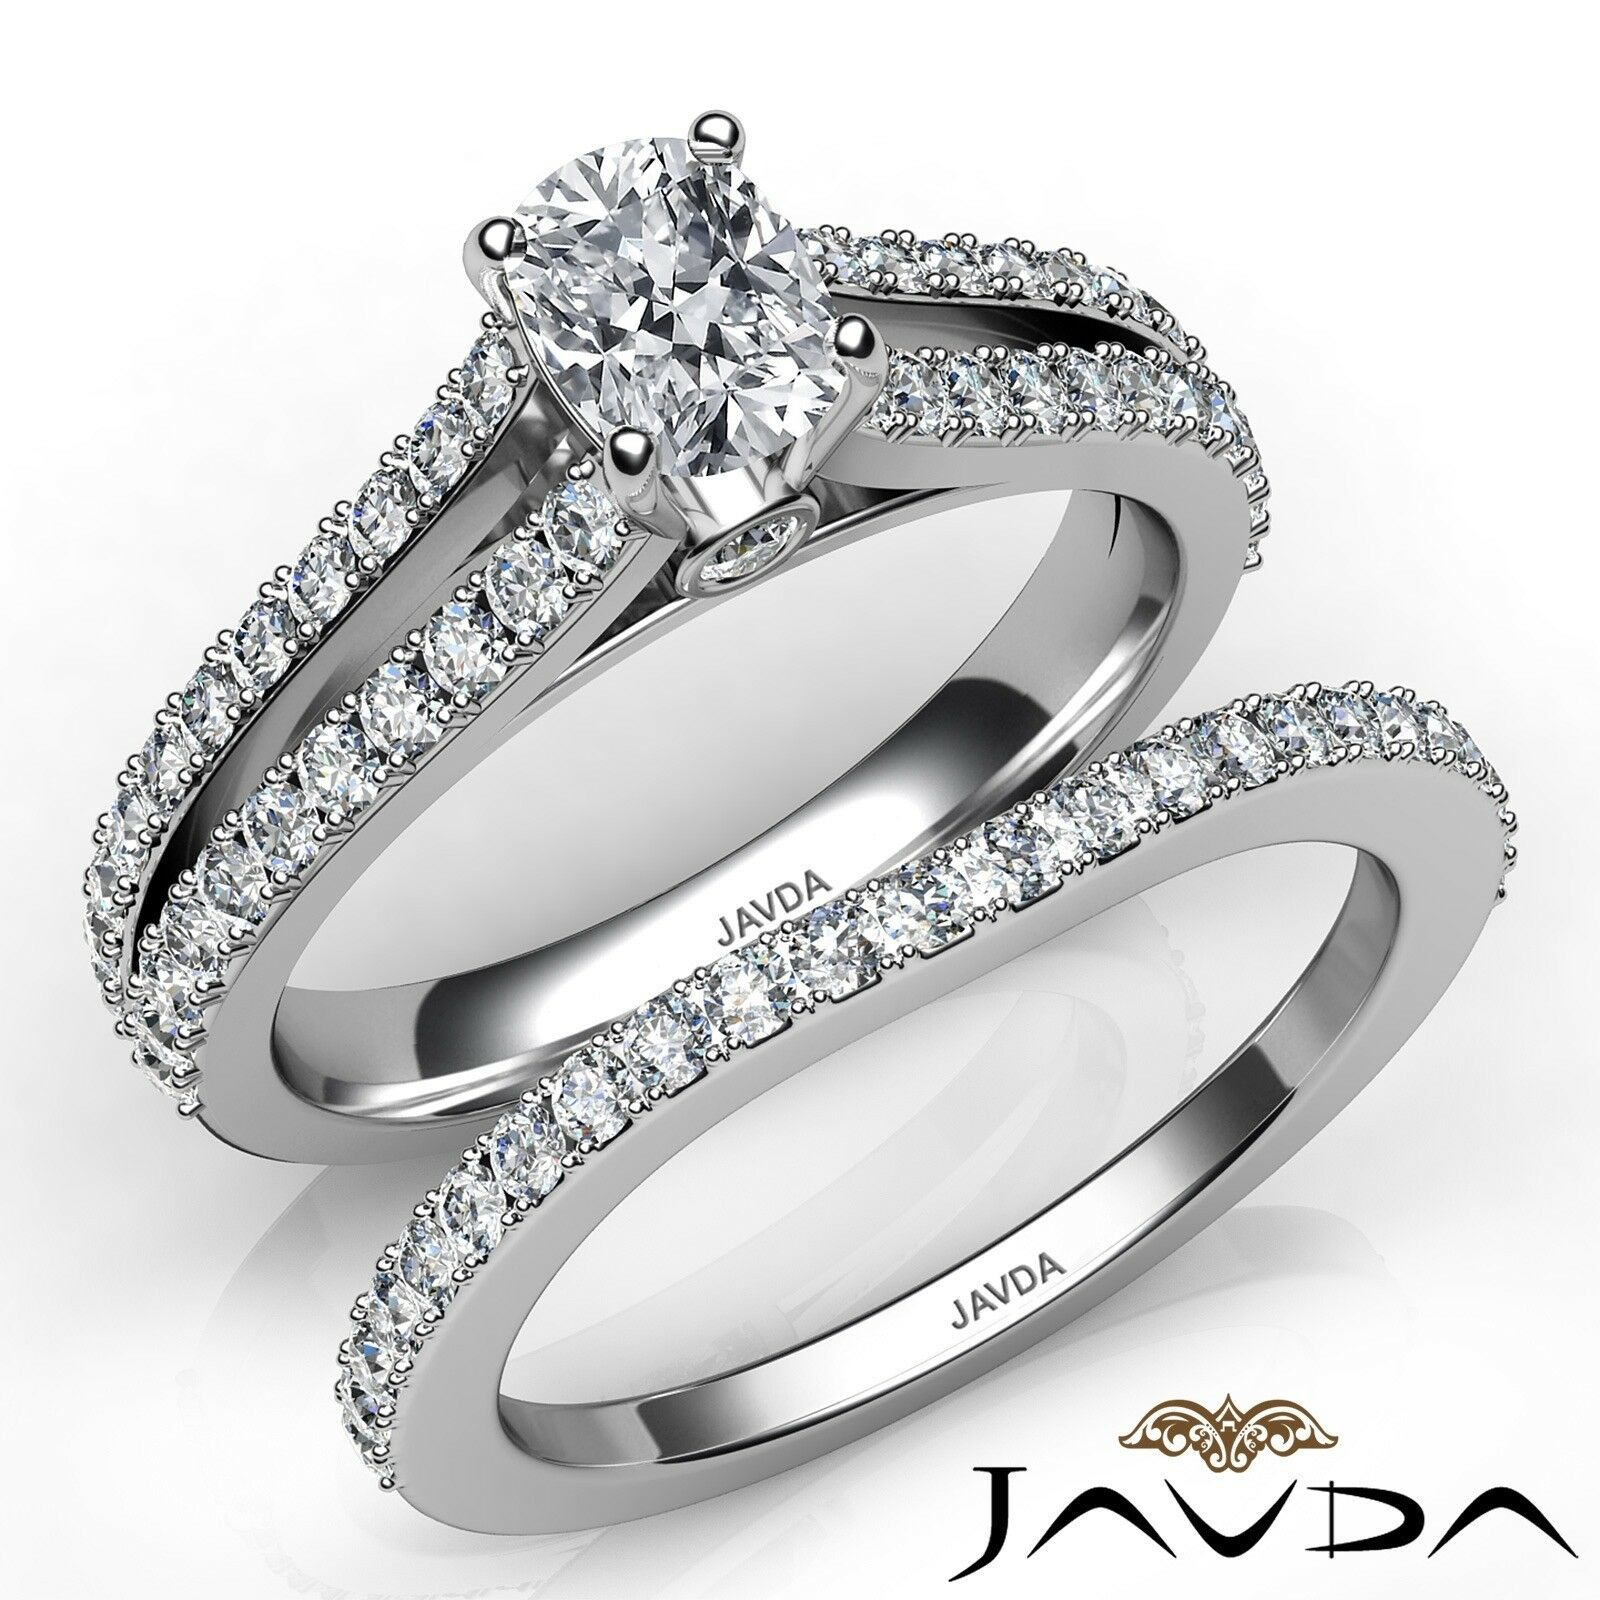 1.74ctw Split Shank Bridal Set Cushion Diamond Engagement Ring GIA H-VS2 W Gold